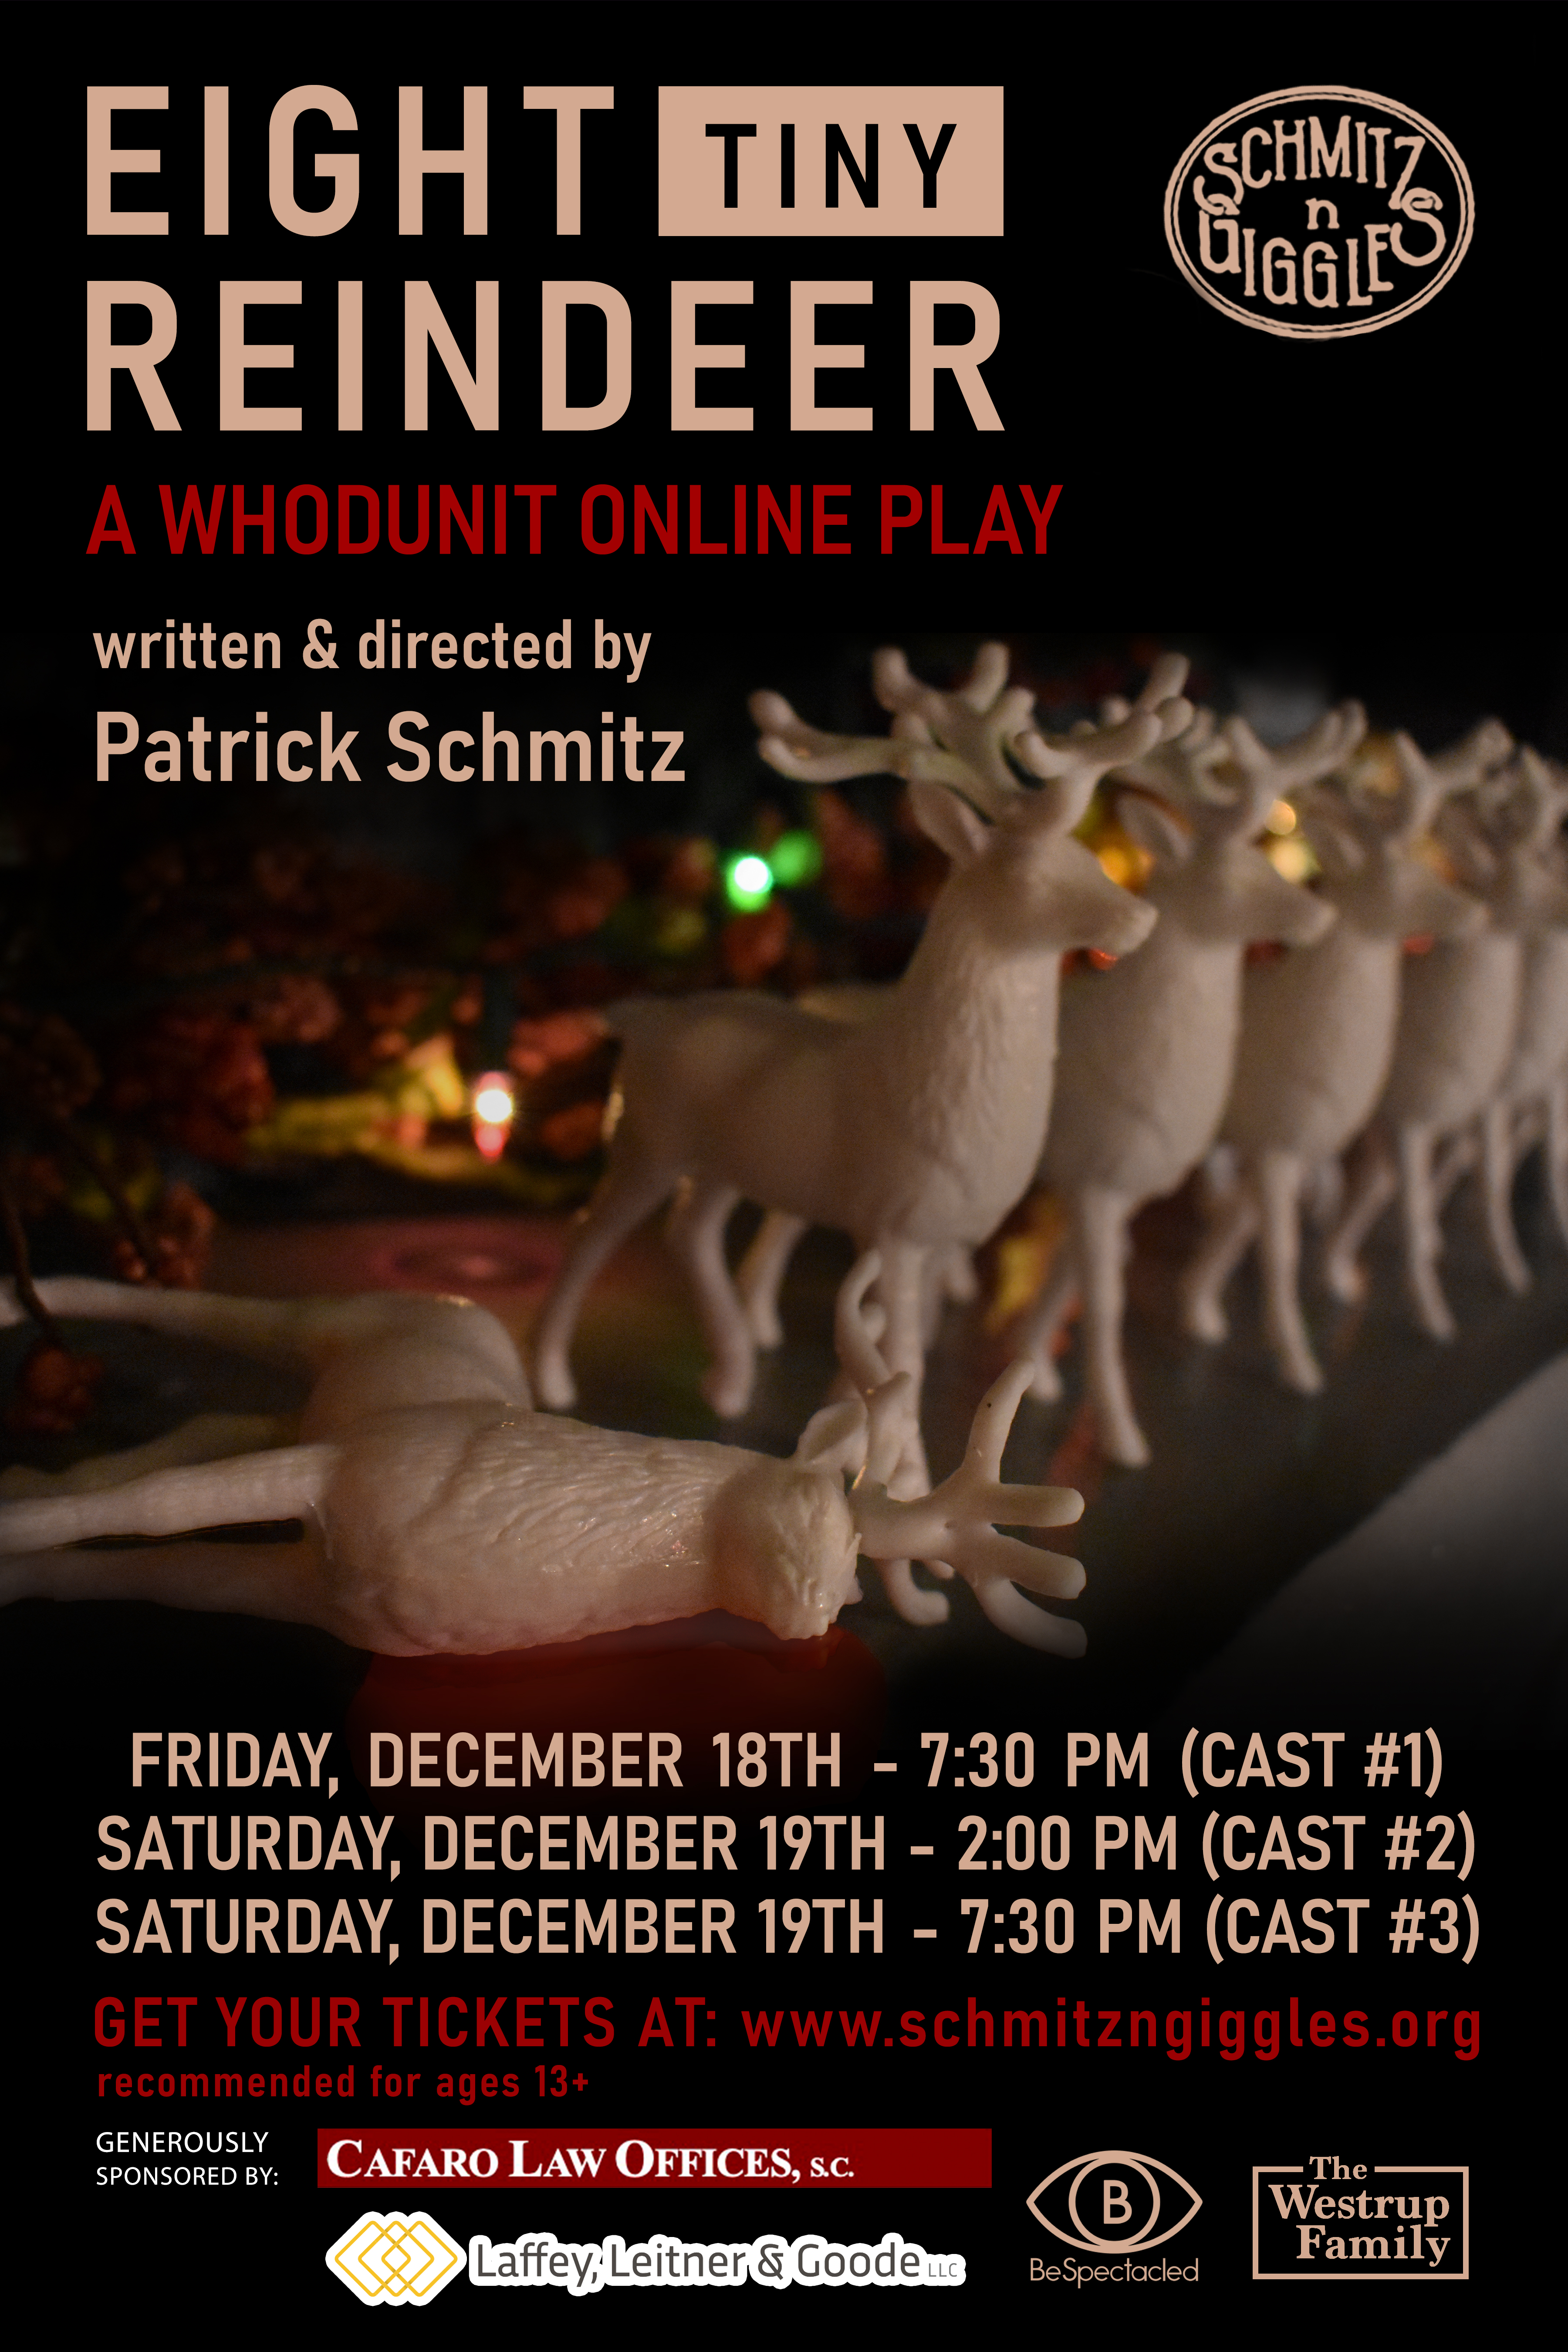 Schmitz 'N' Giggles Announces Holiday Whodunit: Eight Tiny Reindeer Original Online Comedy Thriller to Premiere This December